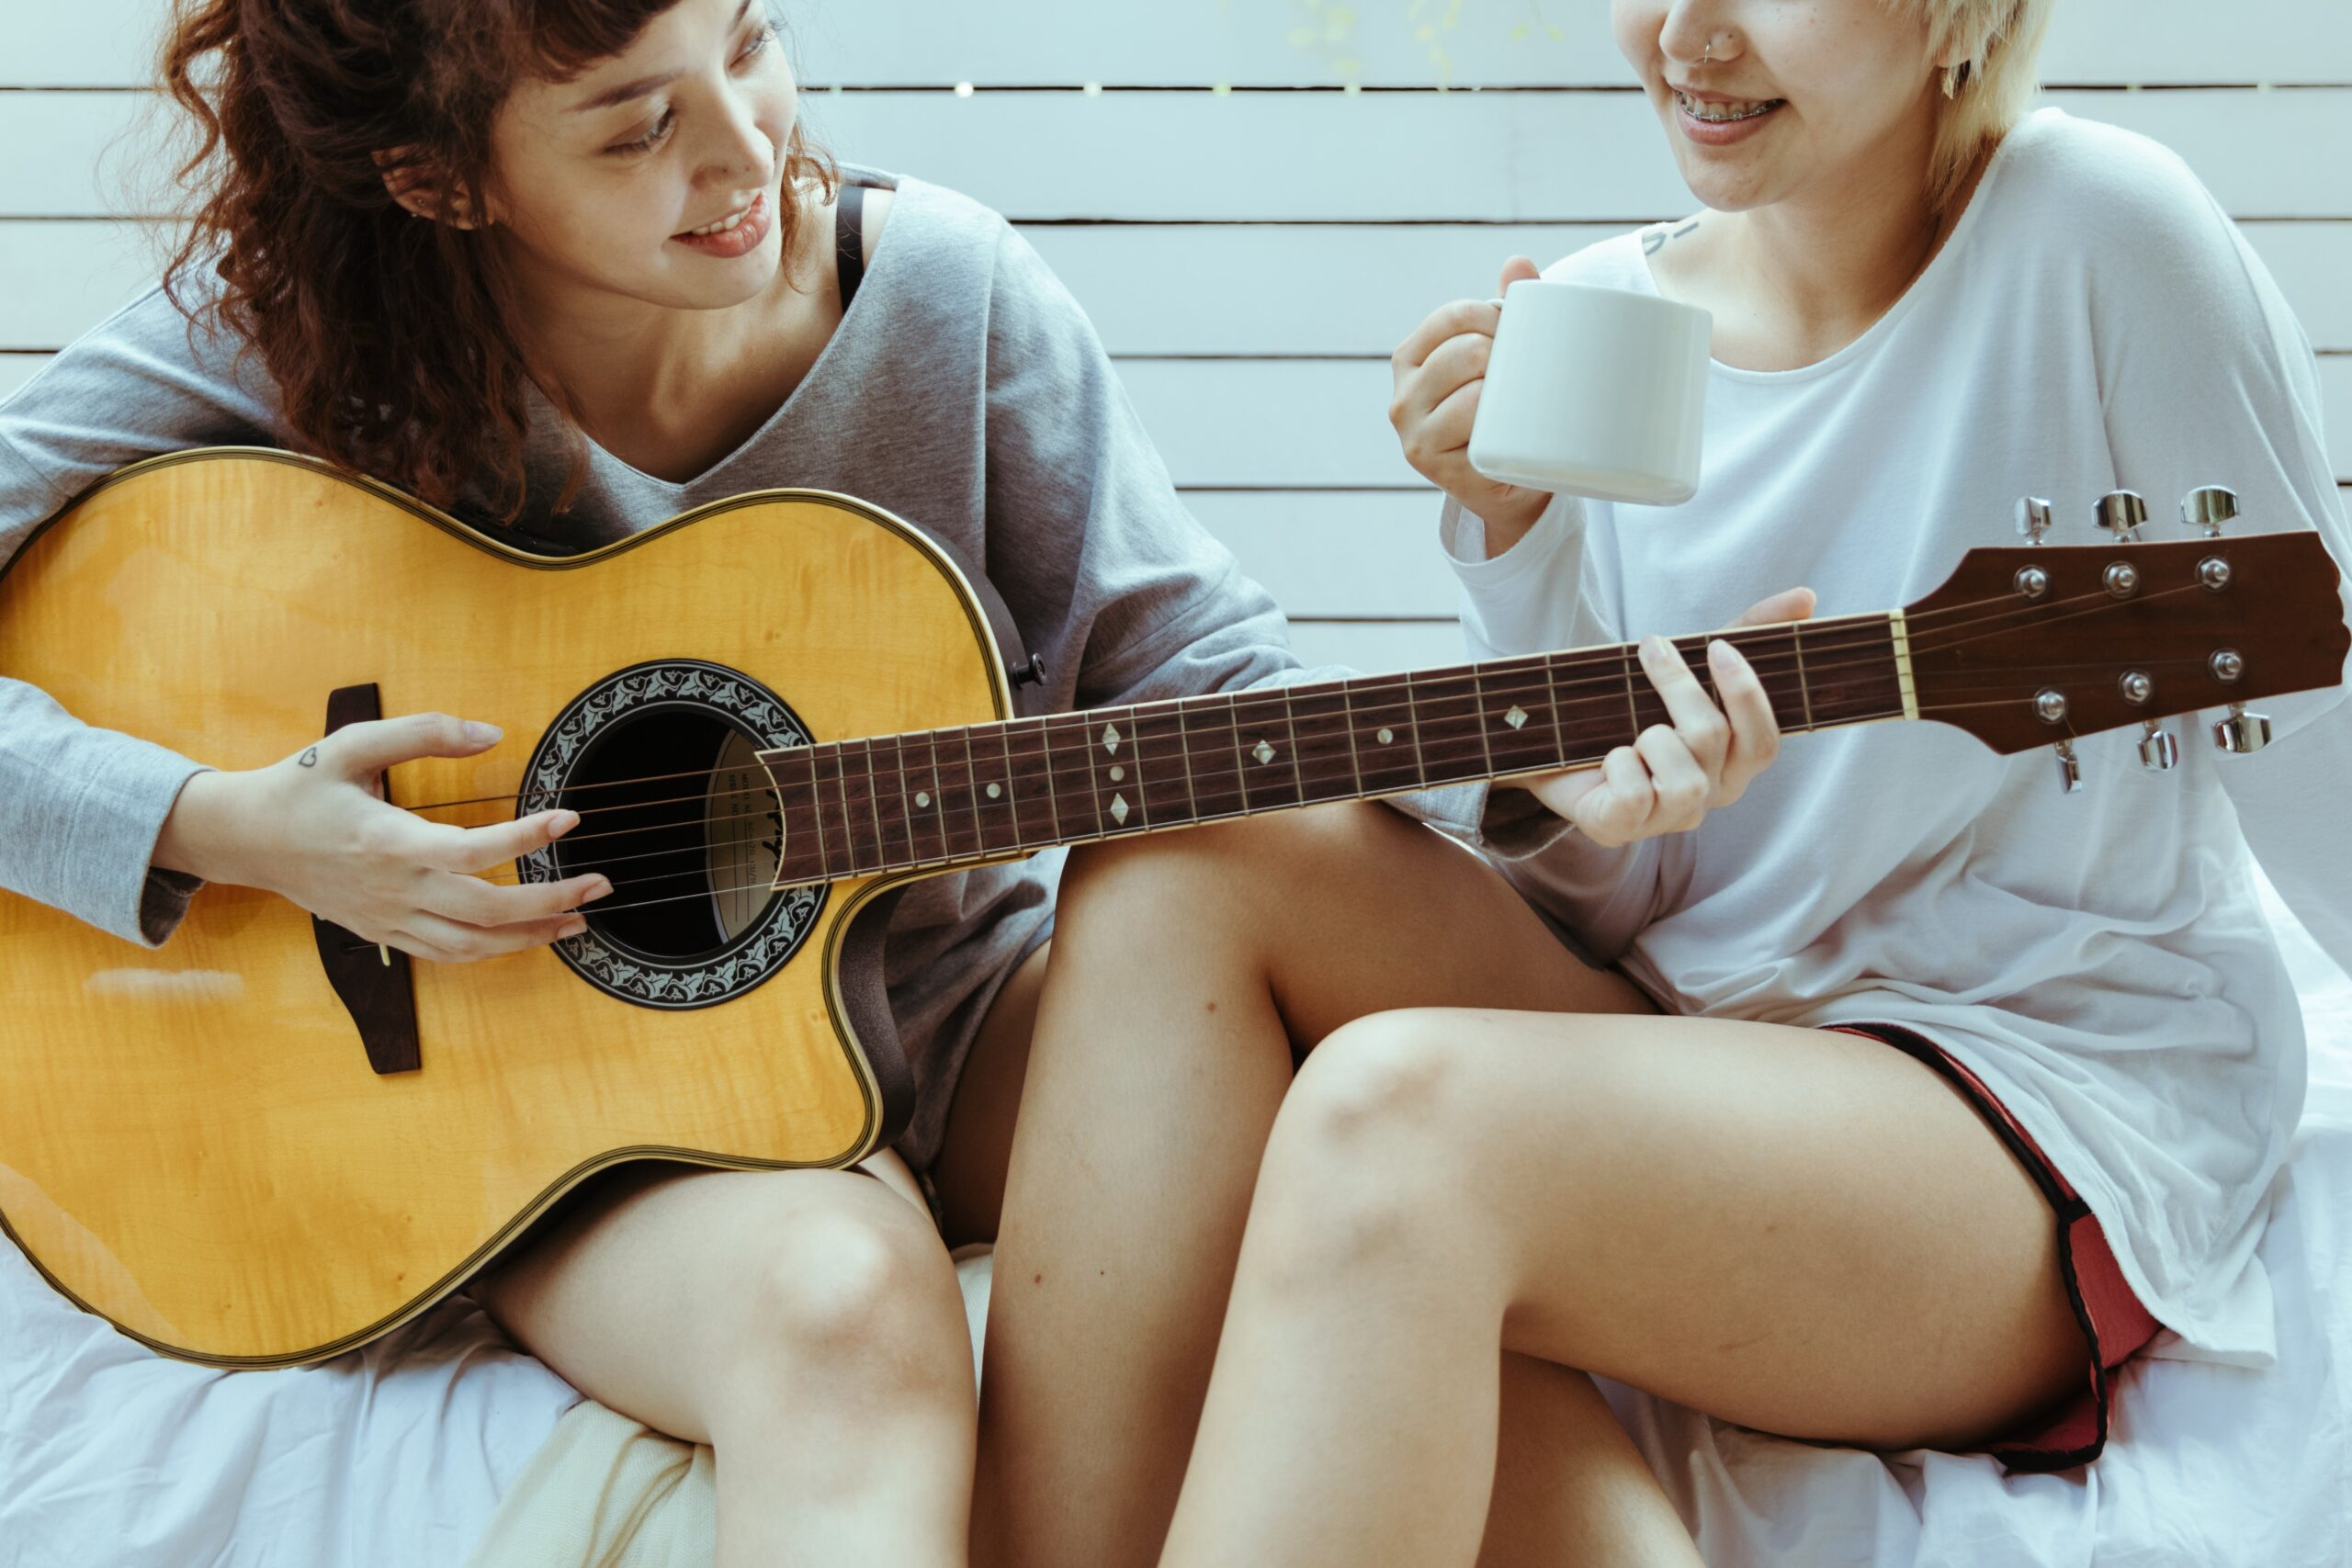 Two Girls Playing Guitar   Best Way To Learn Guitar At Home Today (9+ Easy Tips)